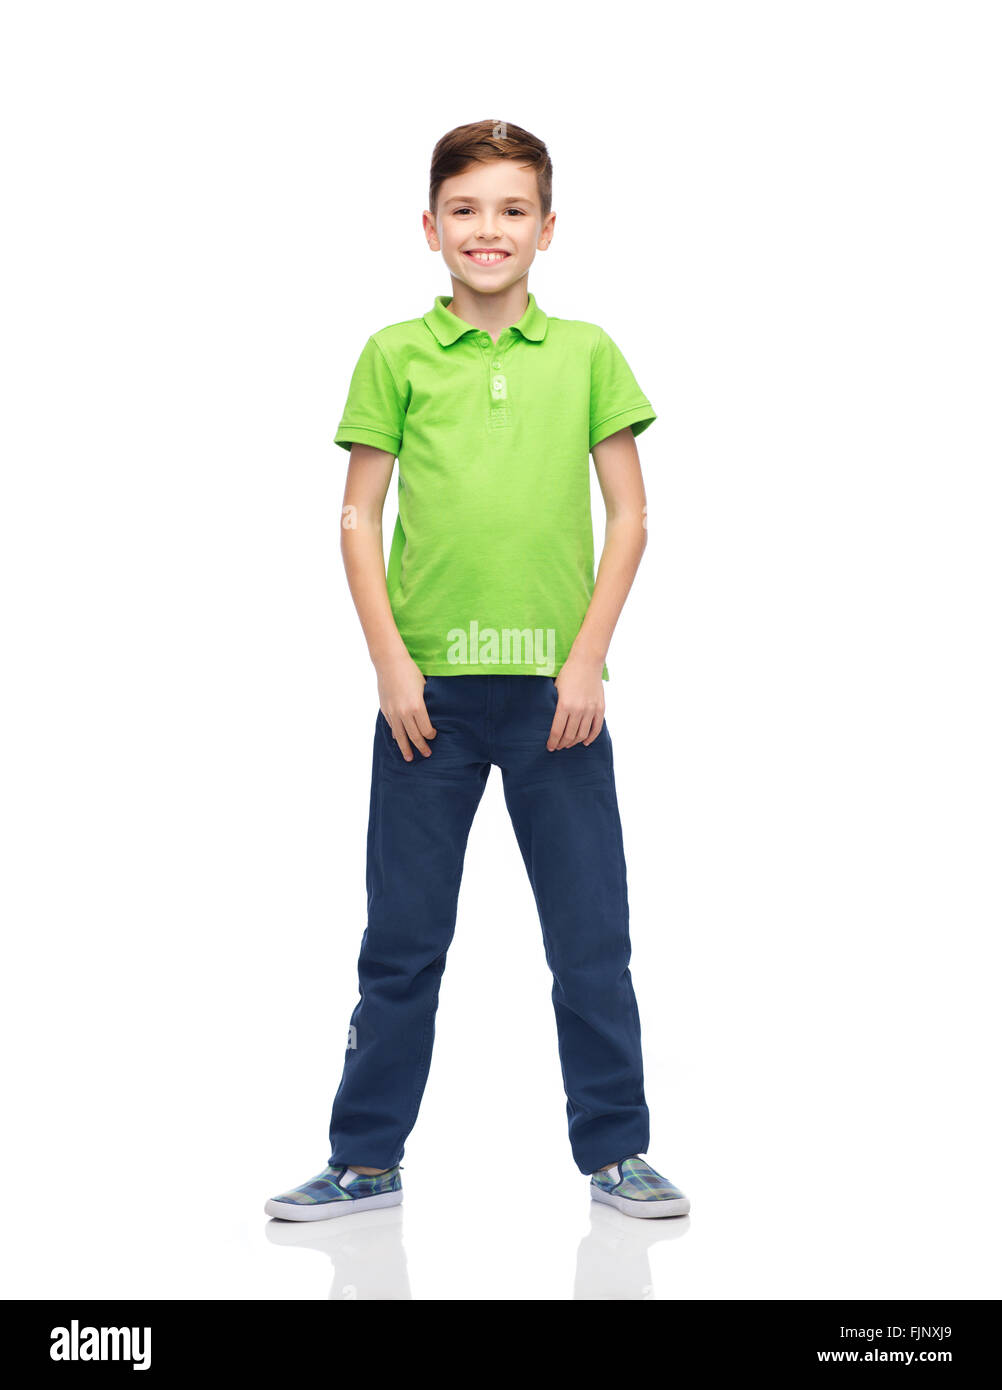 happy boy in green polo t-shirt - Stock Image